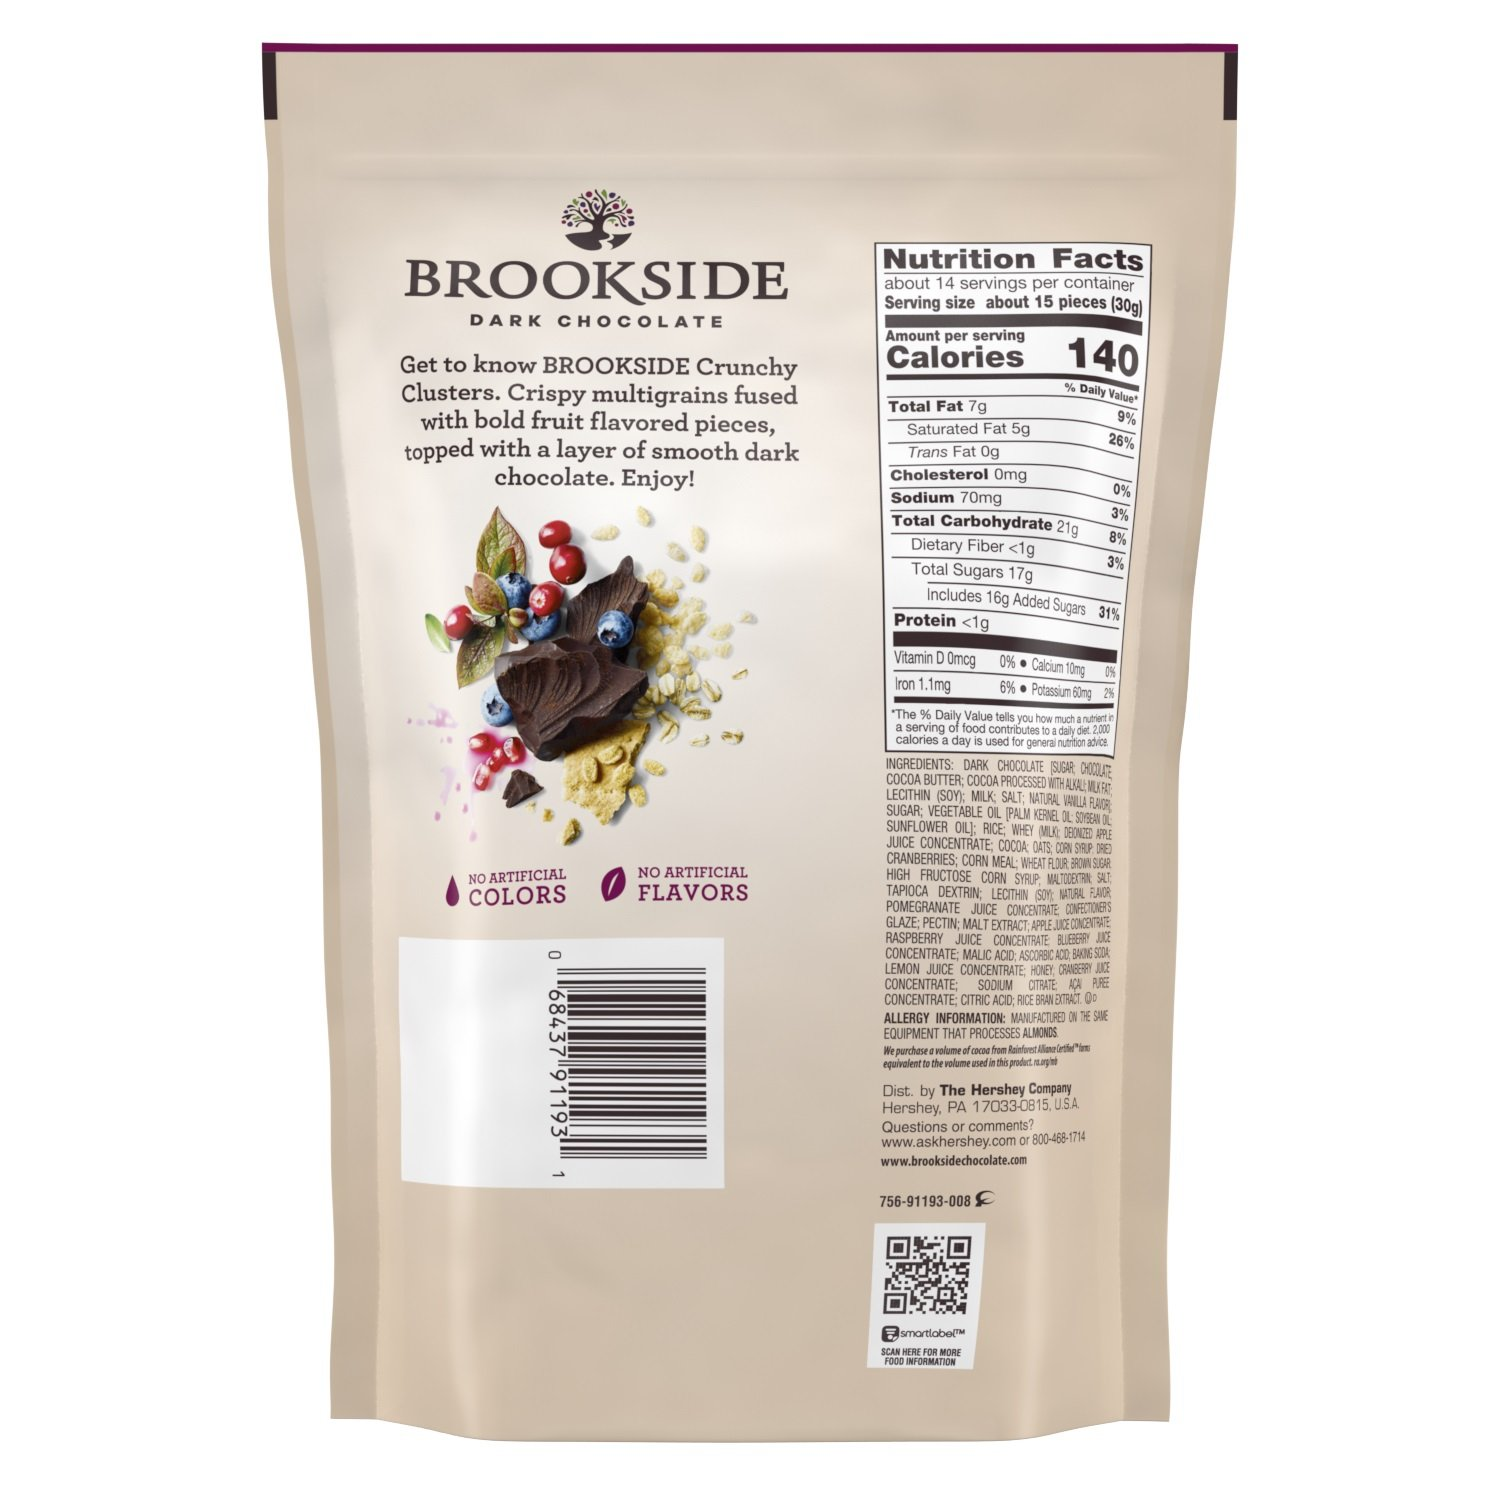 Brookside Dark Chocolate Crunchy Clusters Berry Medley Fruit Flavors Pouch, 15 Ounce by Brookside (Image #2)